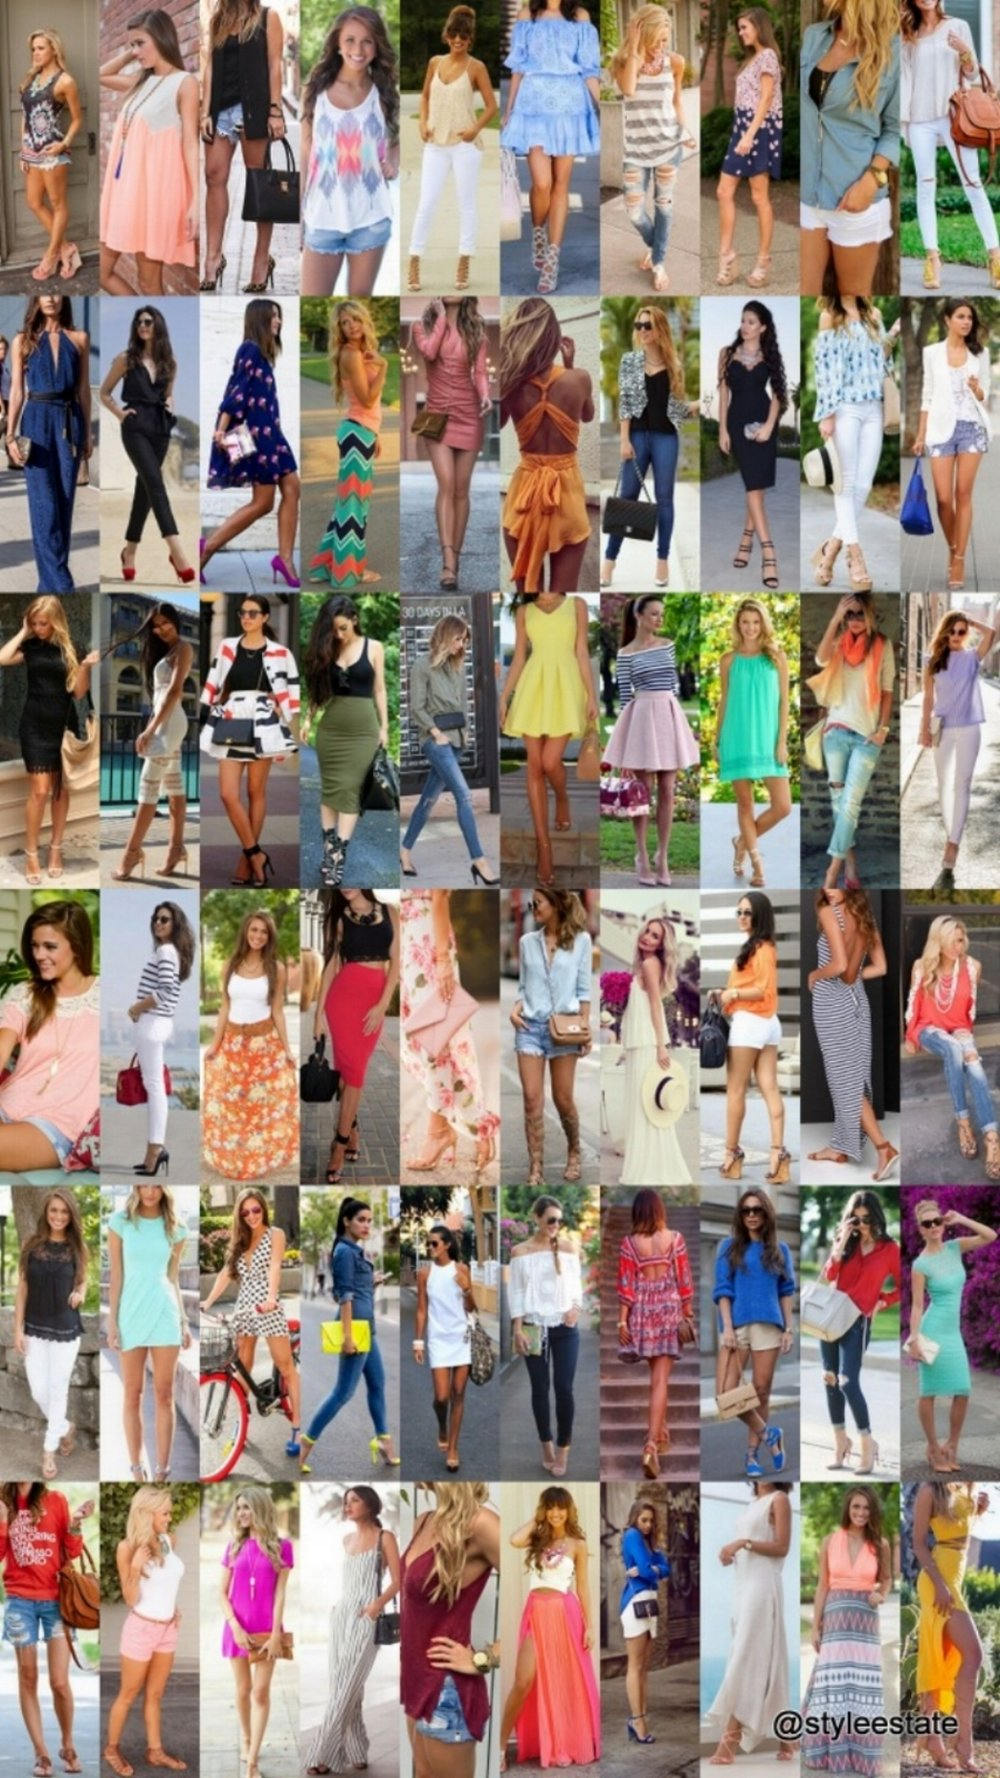 60 Great Summer Outfits On The Street 2015